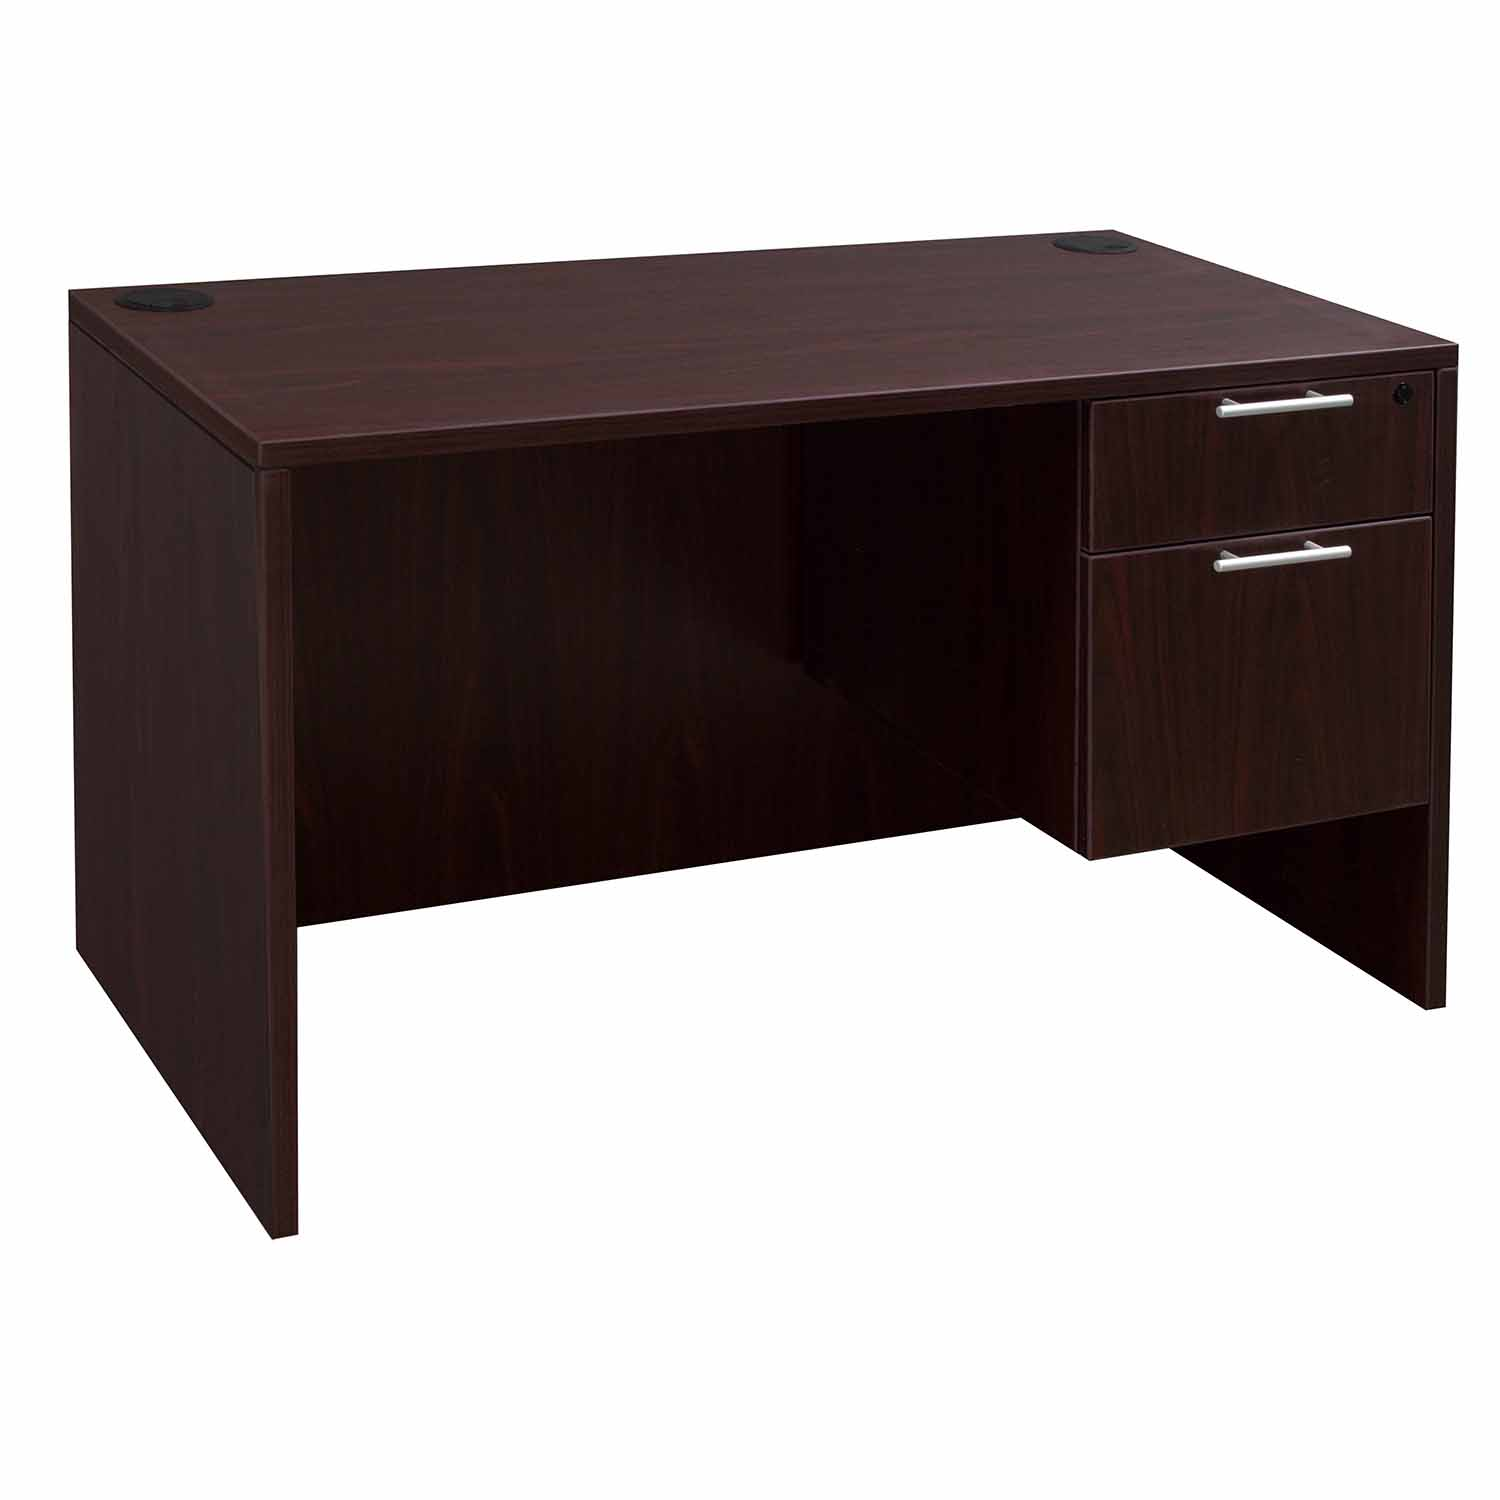 Everyday 24 215 48 Single Pedestal Laminate Desk Mahogany